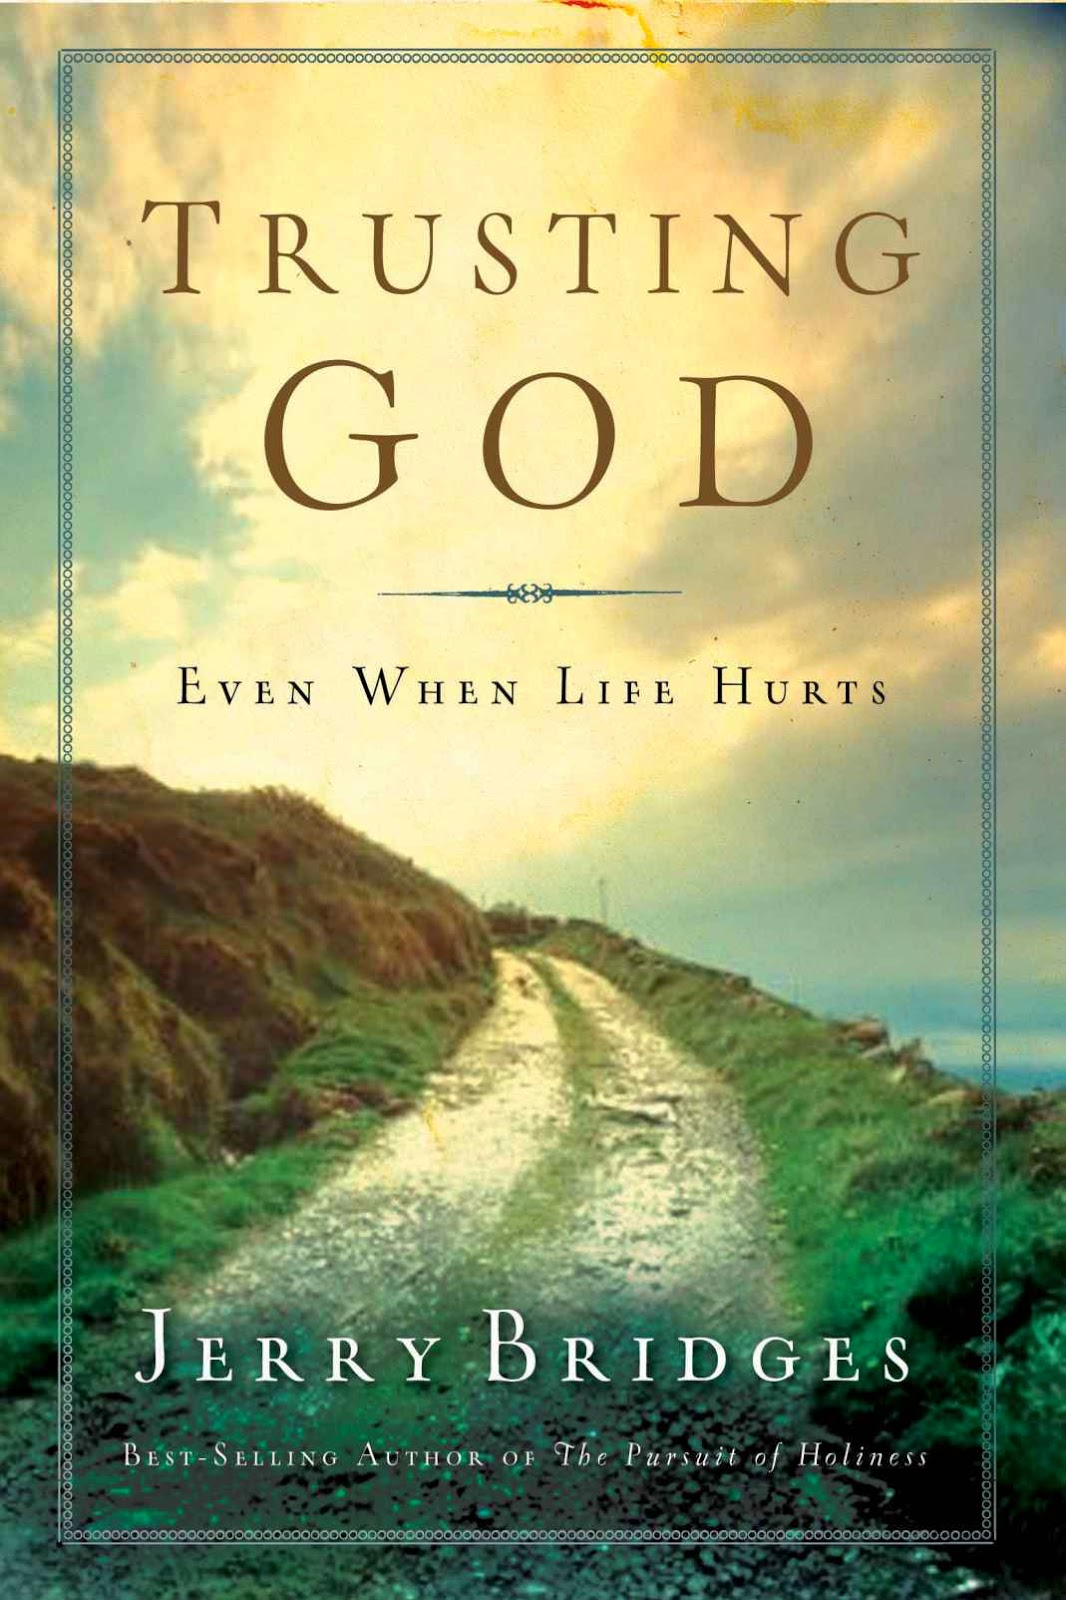 Book review trusting god even when life hurts by jerry bridges book review trusting god even when life hurts by jerry bridges fandeluxe Images